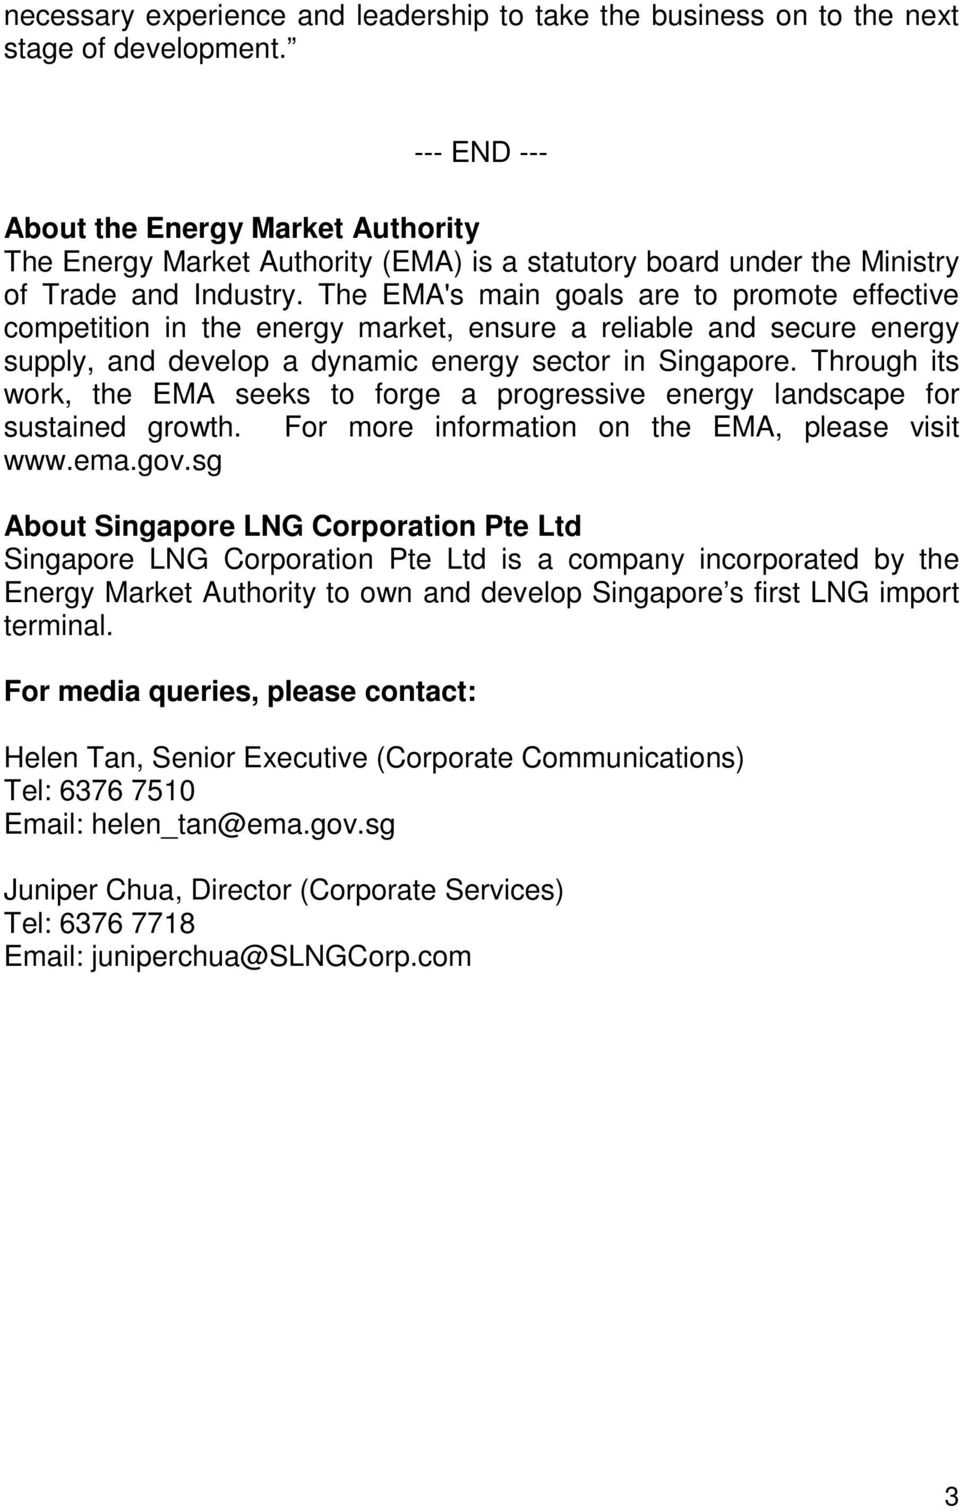 The EMA's main goals are to promote effective competition in the energy market, ensure a reliable and secure energy supply, and develop a dynamic energy sector in Singapore.